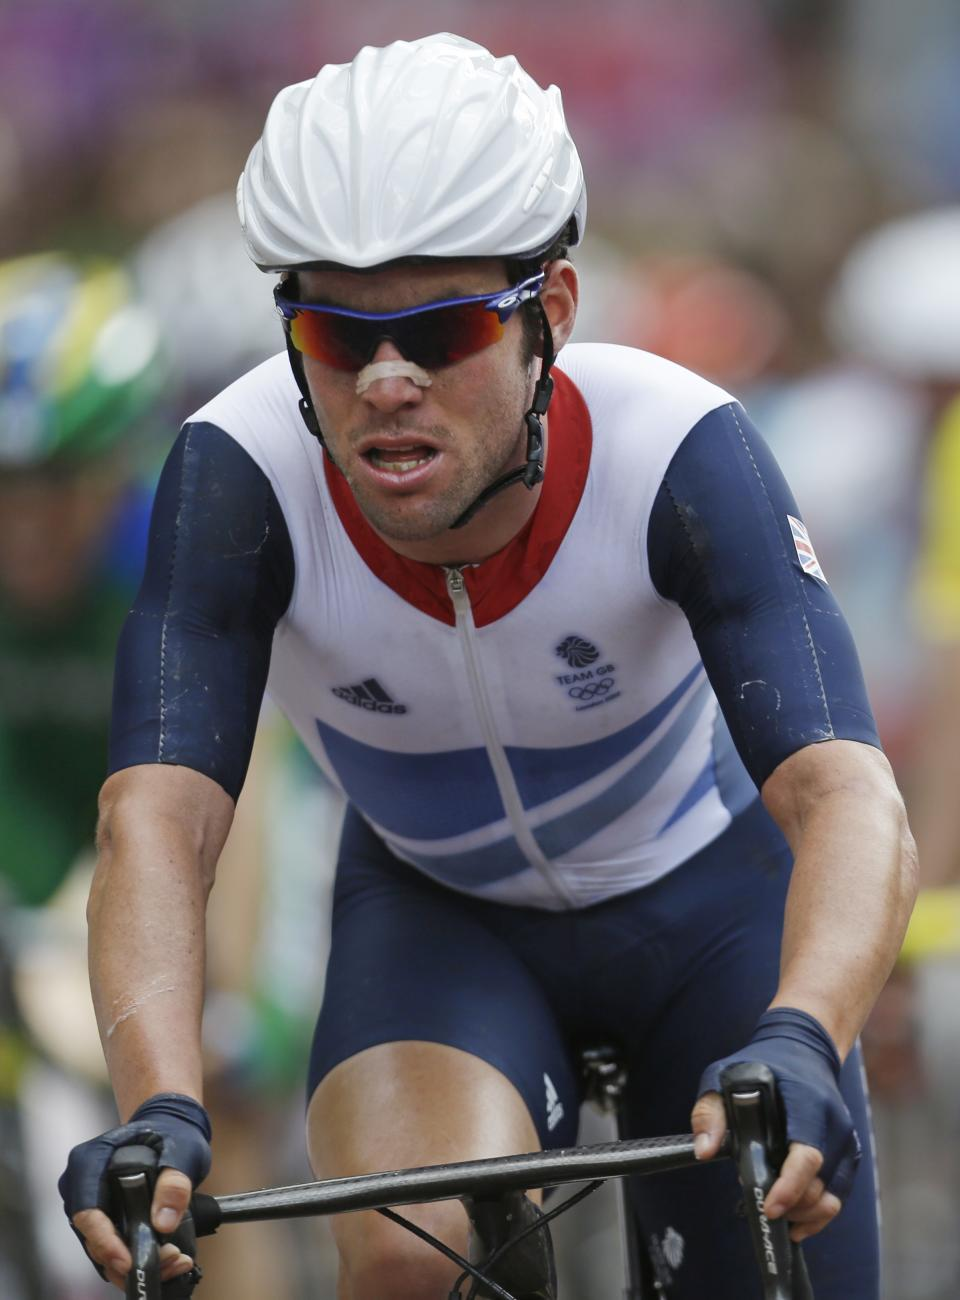 Britain's Mark Cavendish pedals during the Men's Road Cycling race at the 2012 Summer Olympics, Saturday, July 28, 2012, in London. (AP Photo/Sergey Ponomarev)